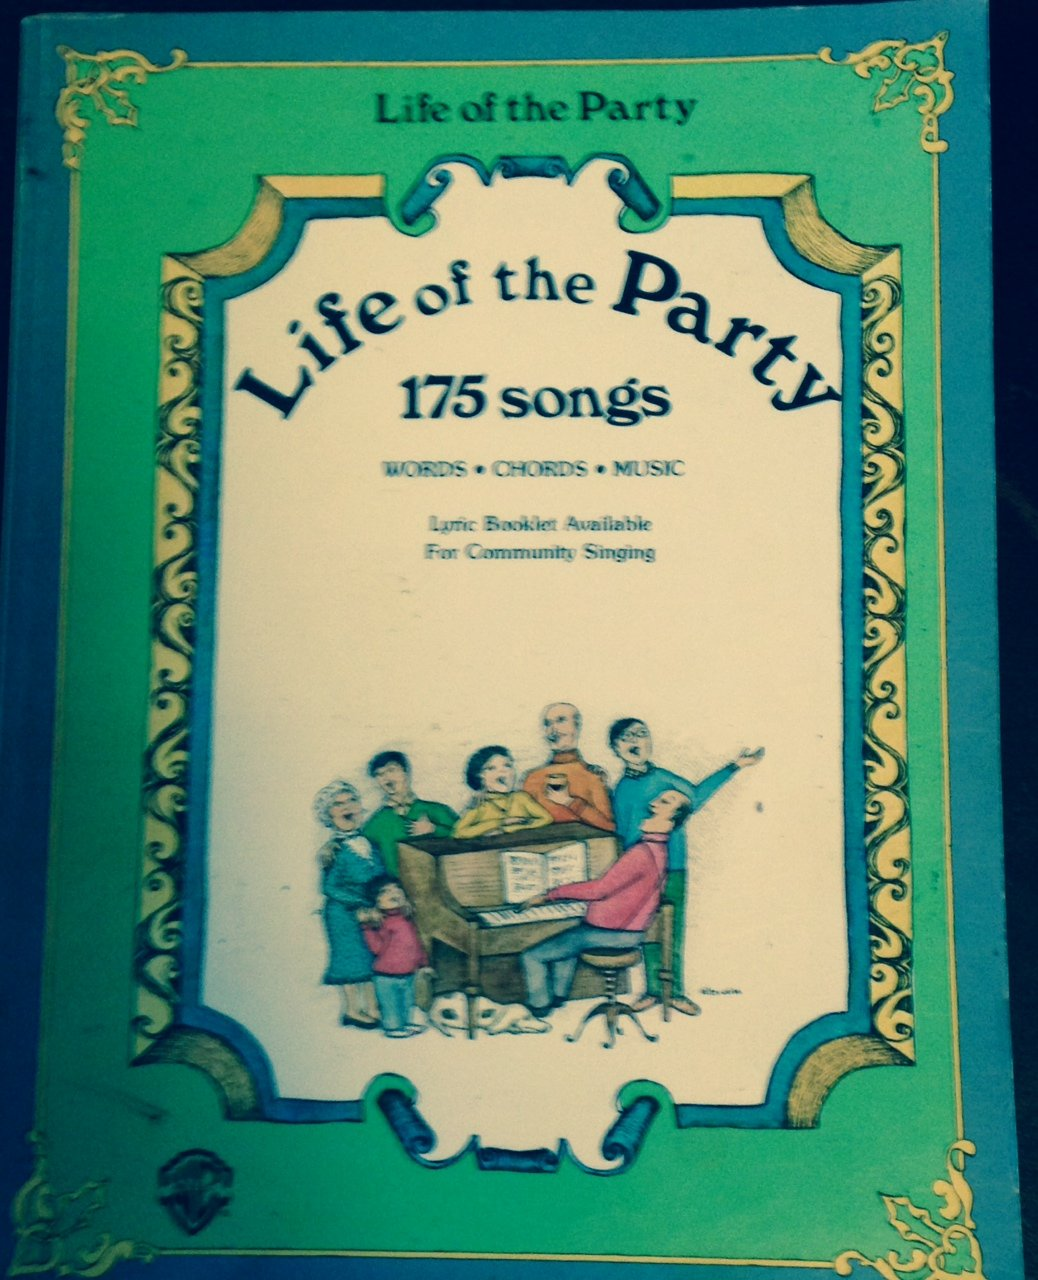 life-of-the-party-bk-1-songbook